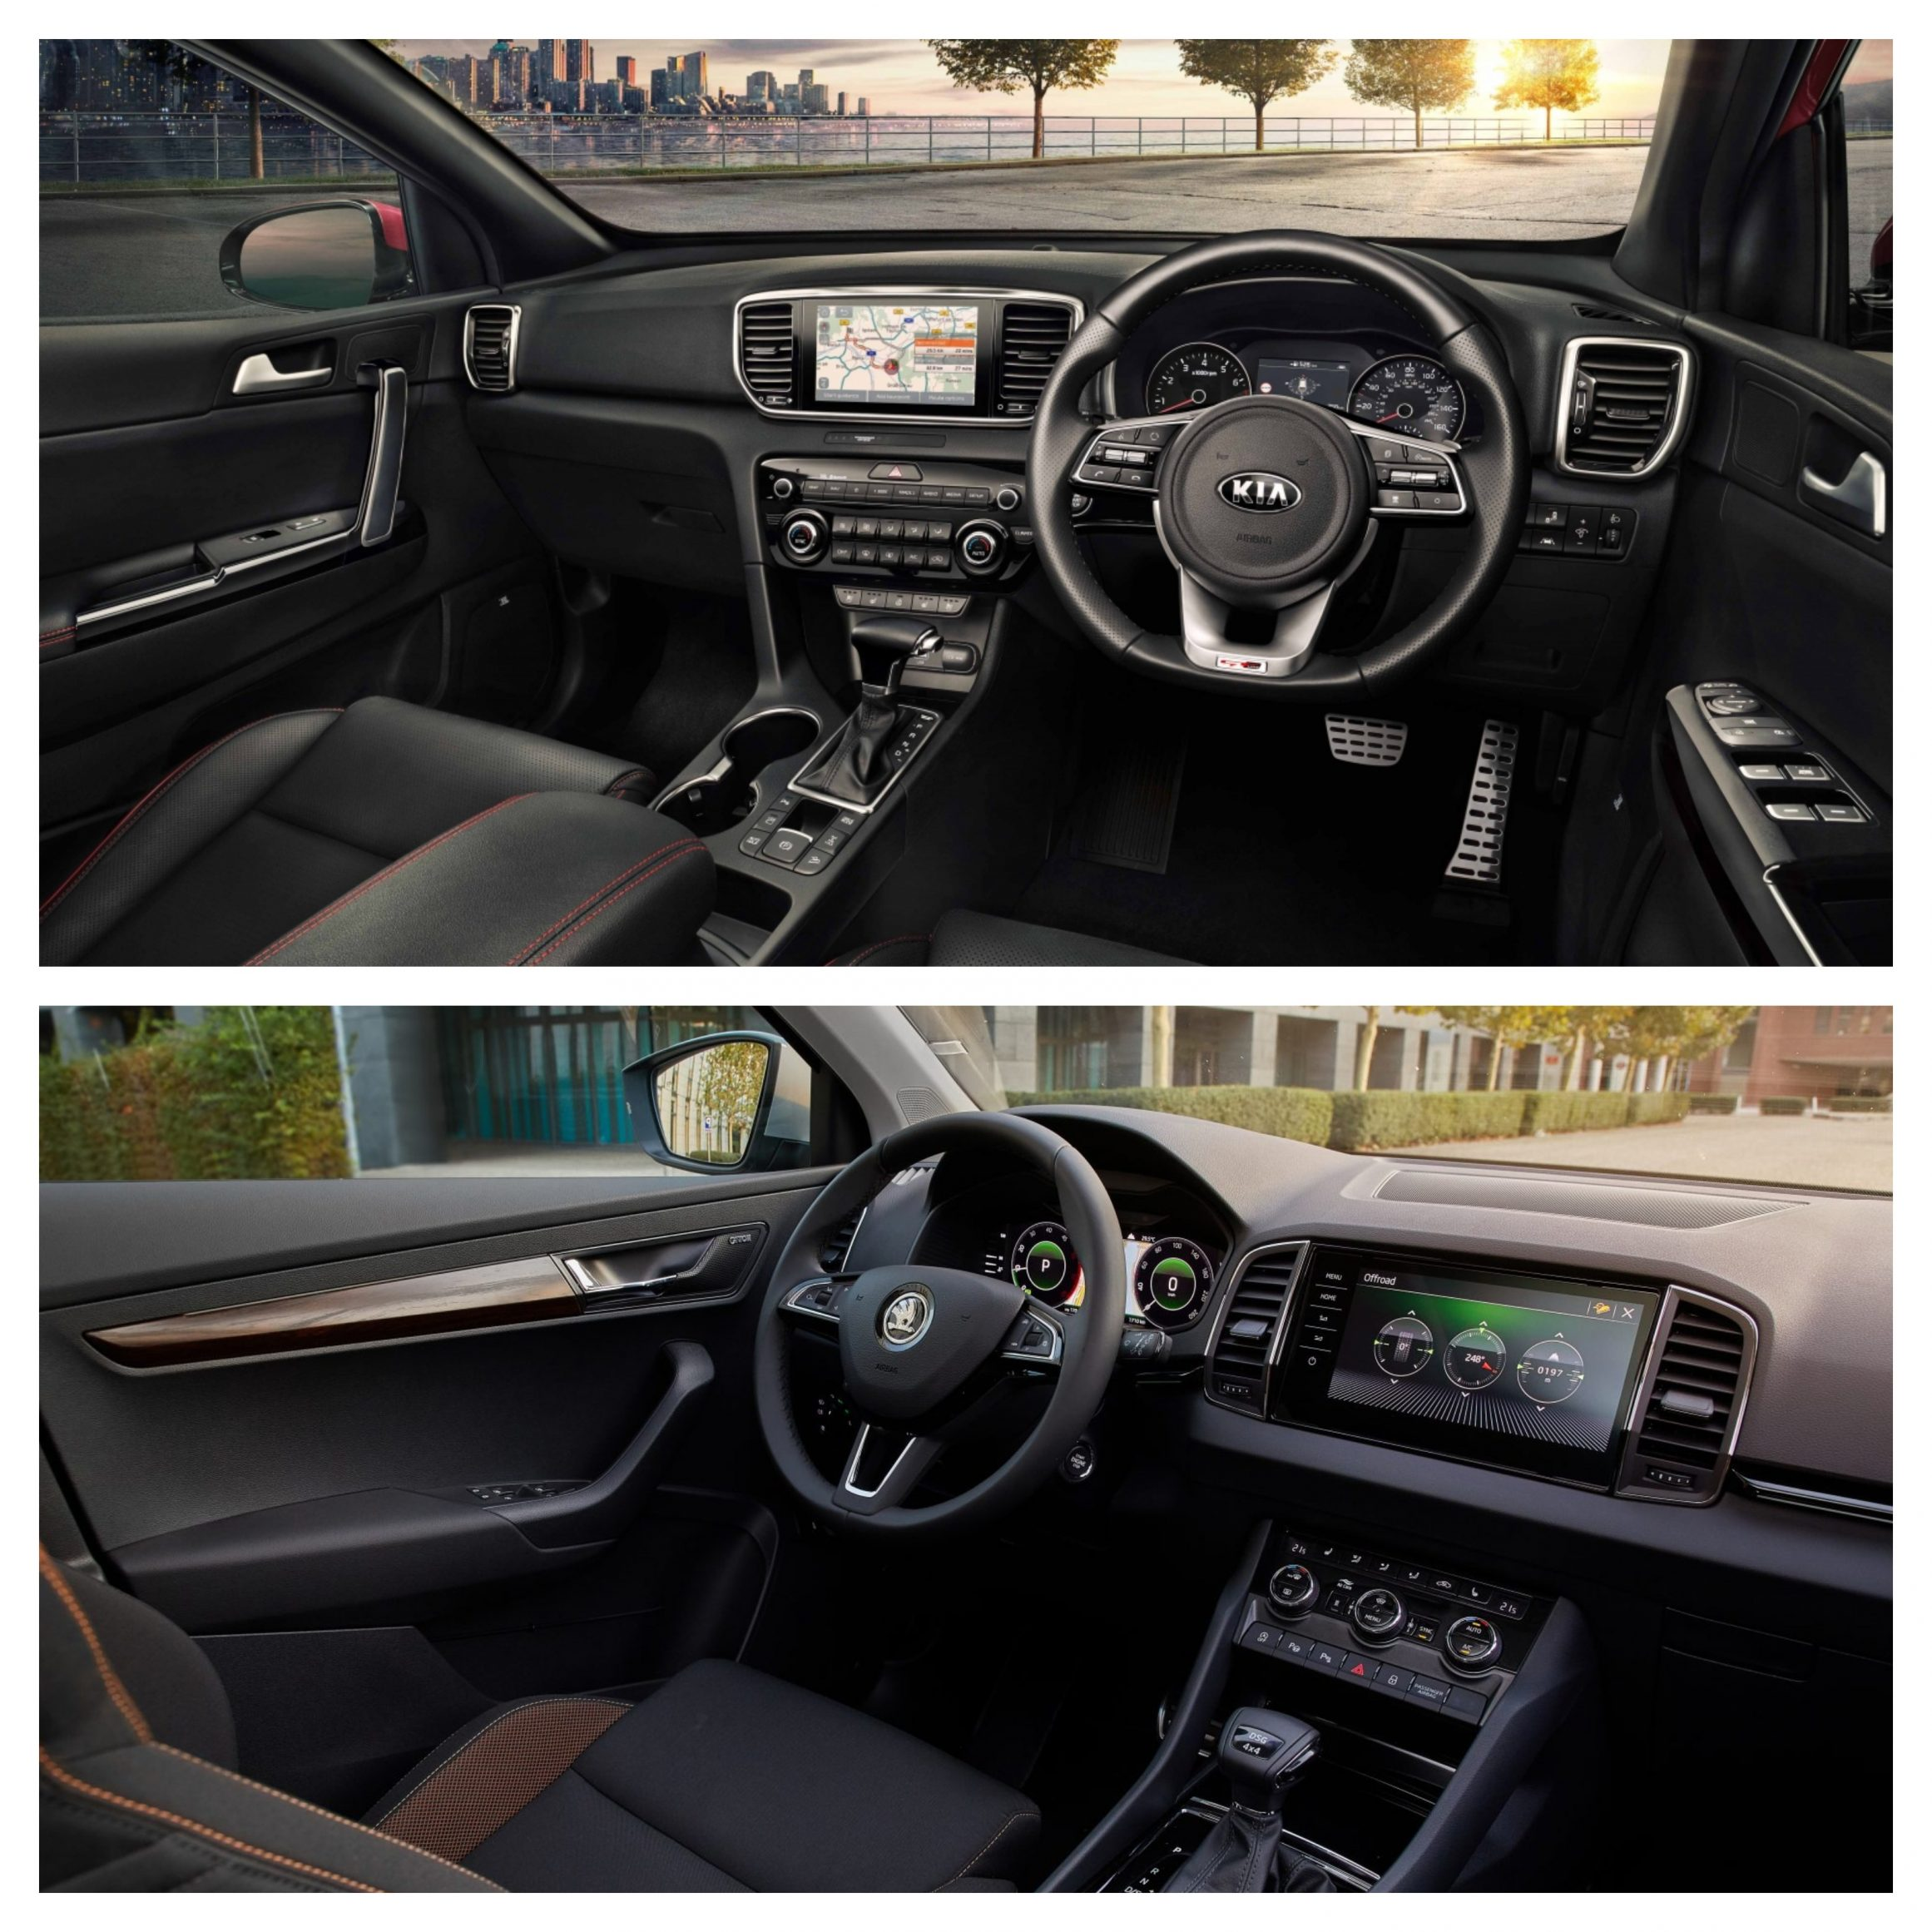 interior of the sportage and karoq